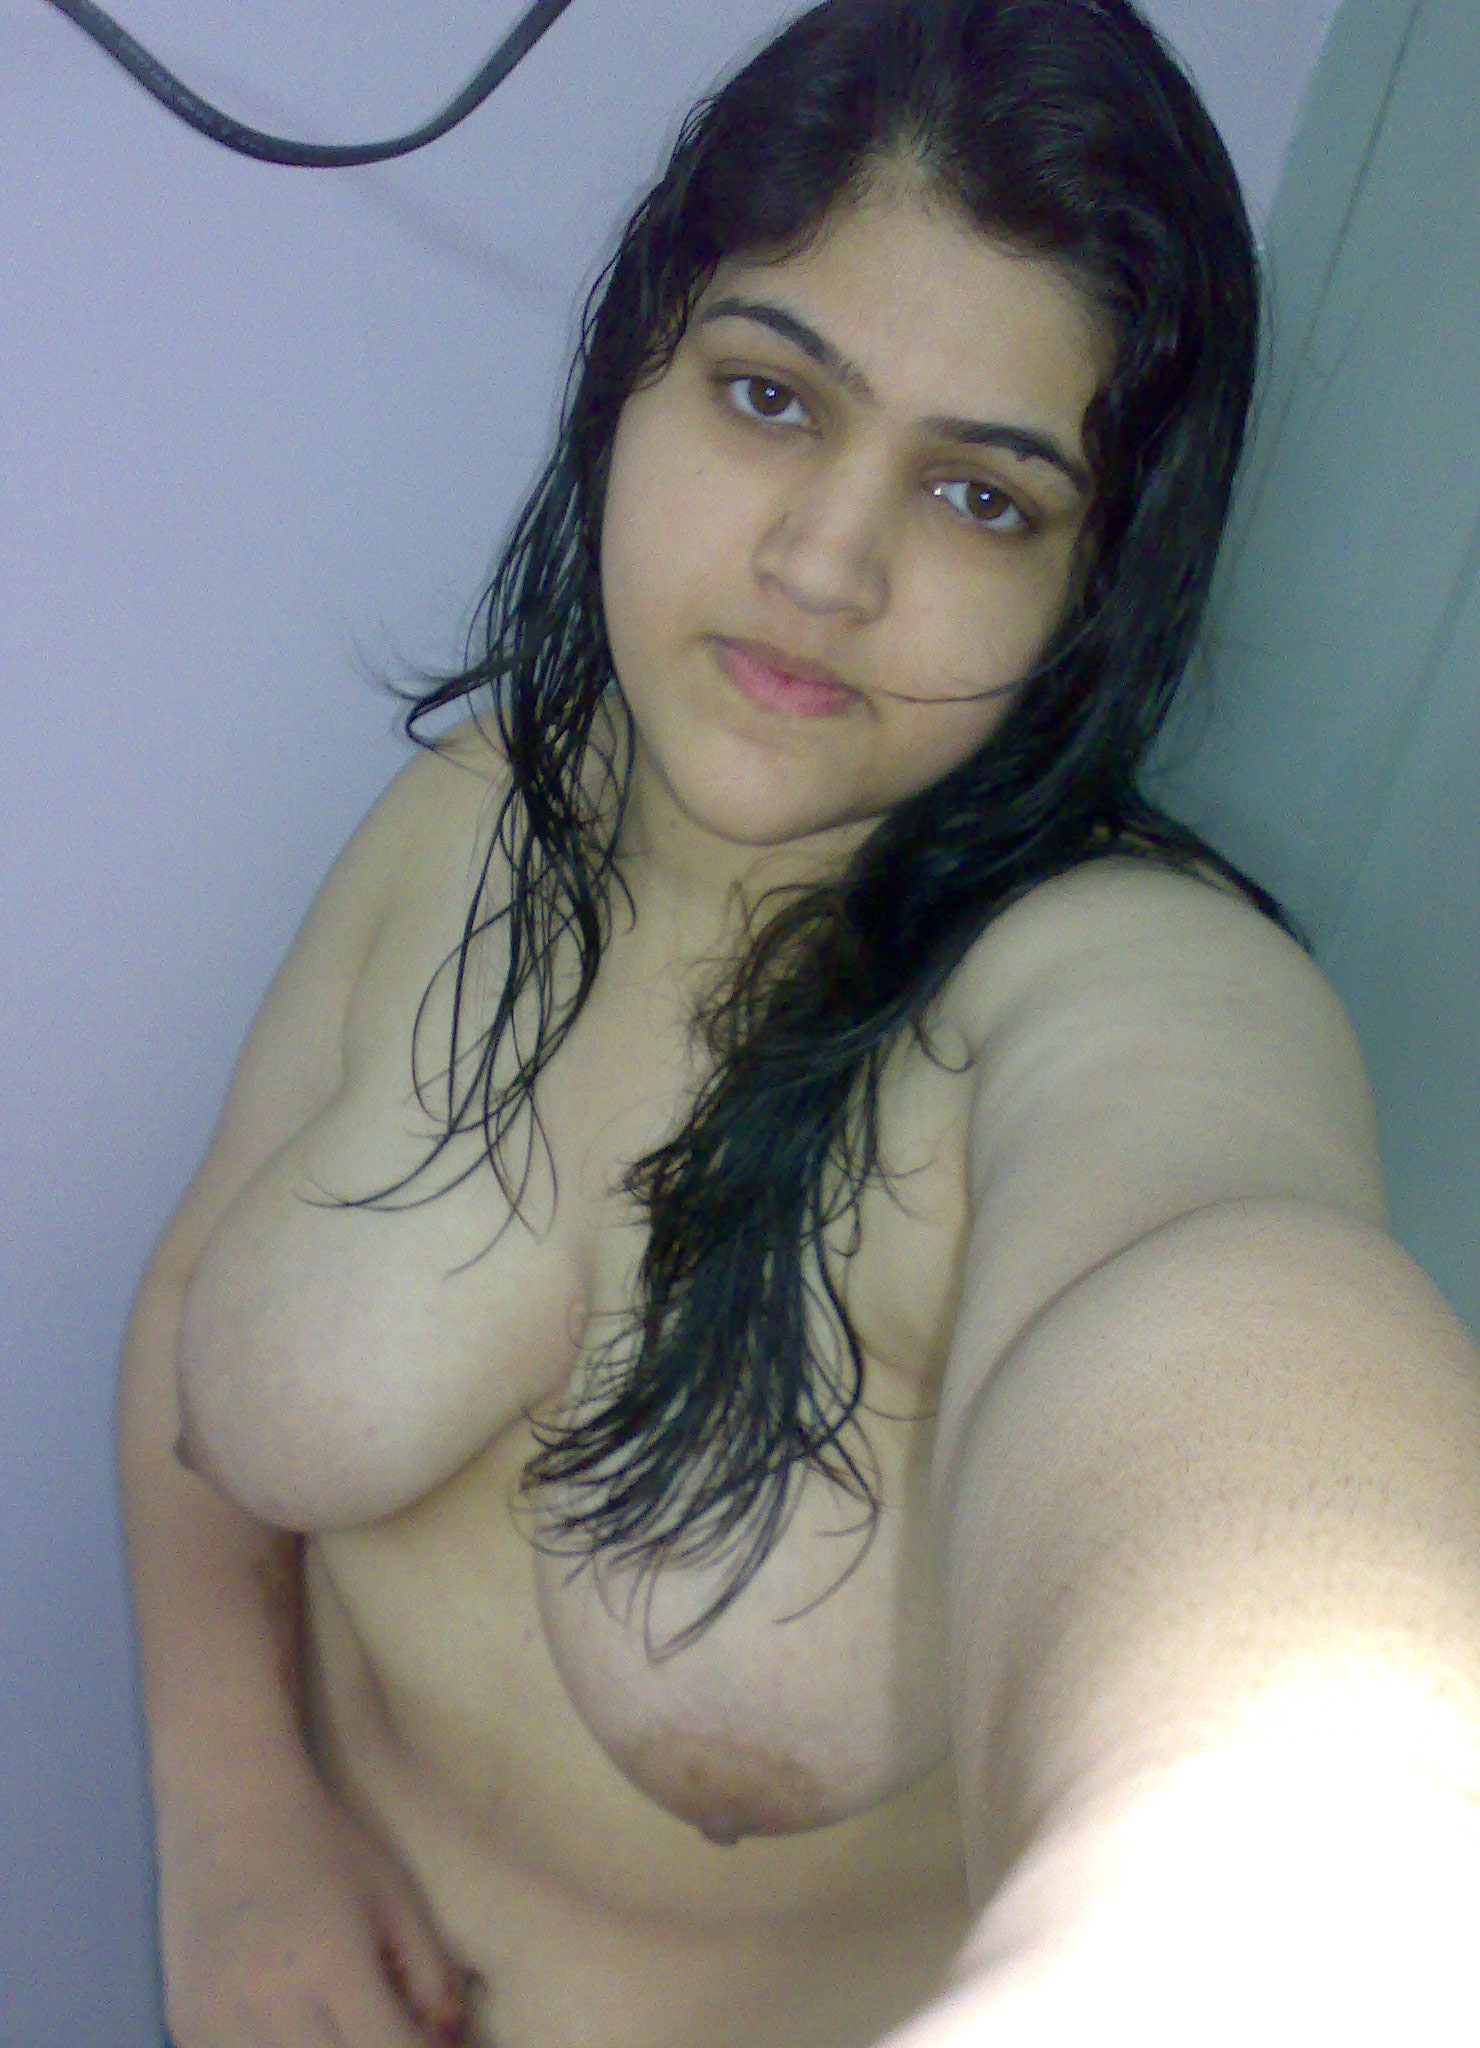 Tamil guy nude photos